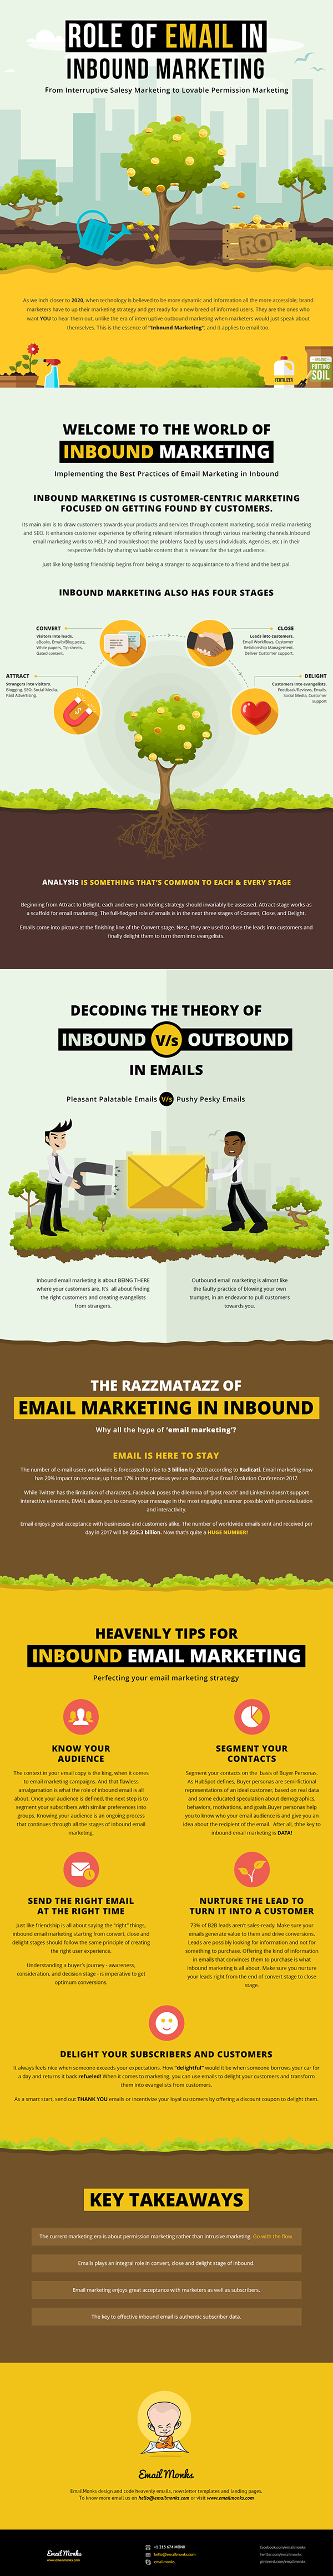 Exploring the Promise of Emails in Inbound Marketing [Infographic] | Social Media Today